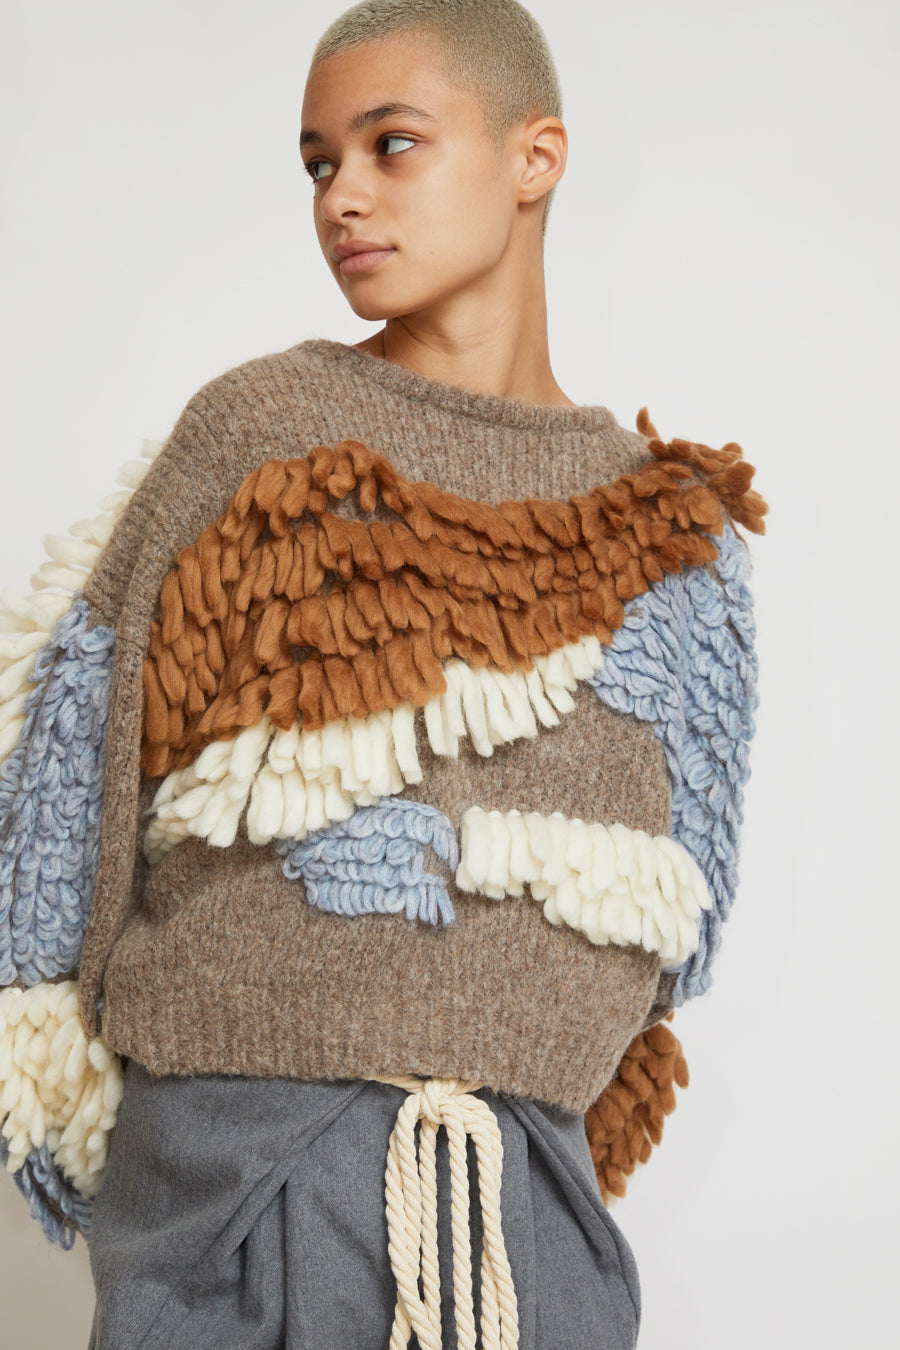 Atelier Delphine Paladora Sweater in Colorway B